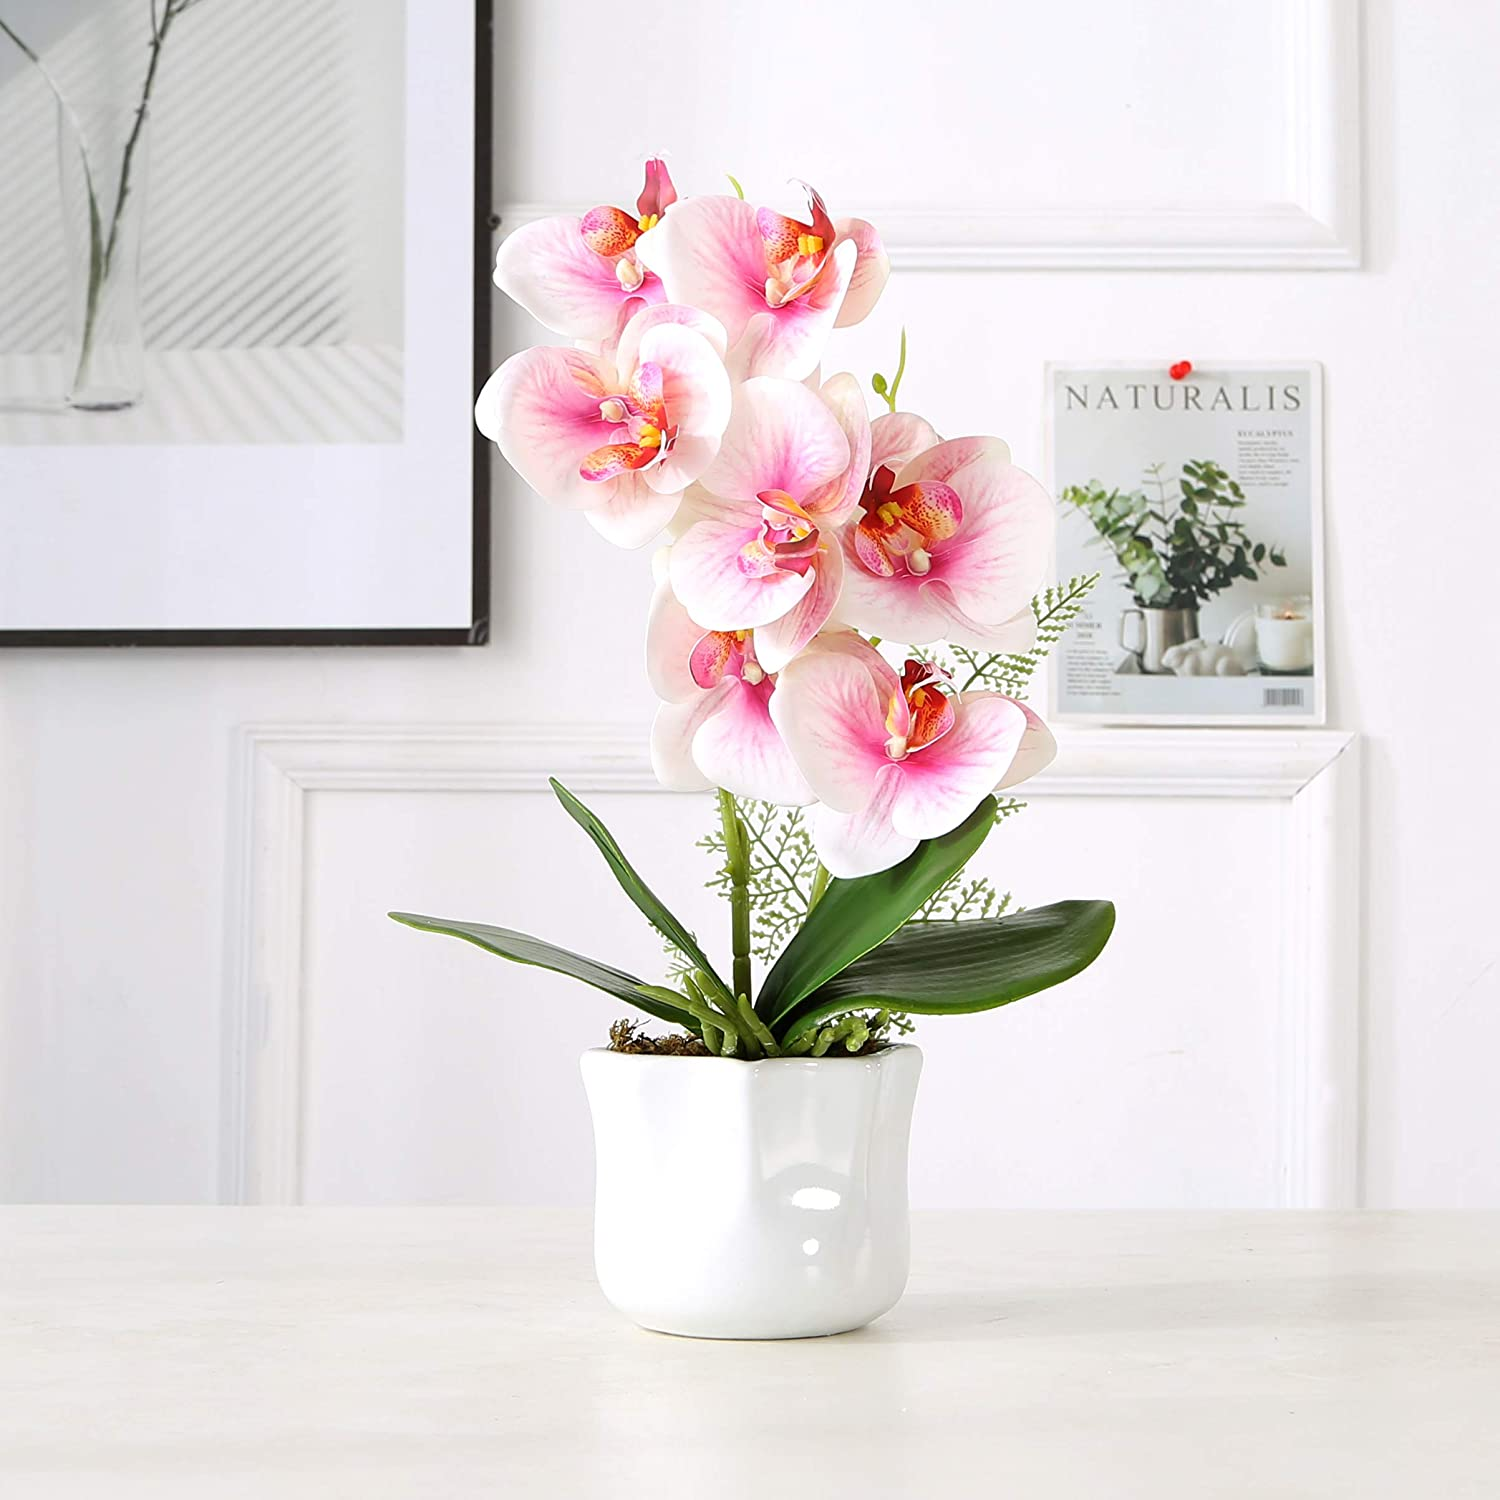 KINBEDY Artificial Bonsai Orchids Phalaenopsis with Vase Home Office Decoration Party Wedding Decor, Pink.